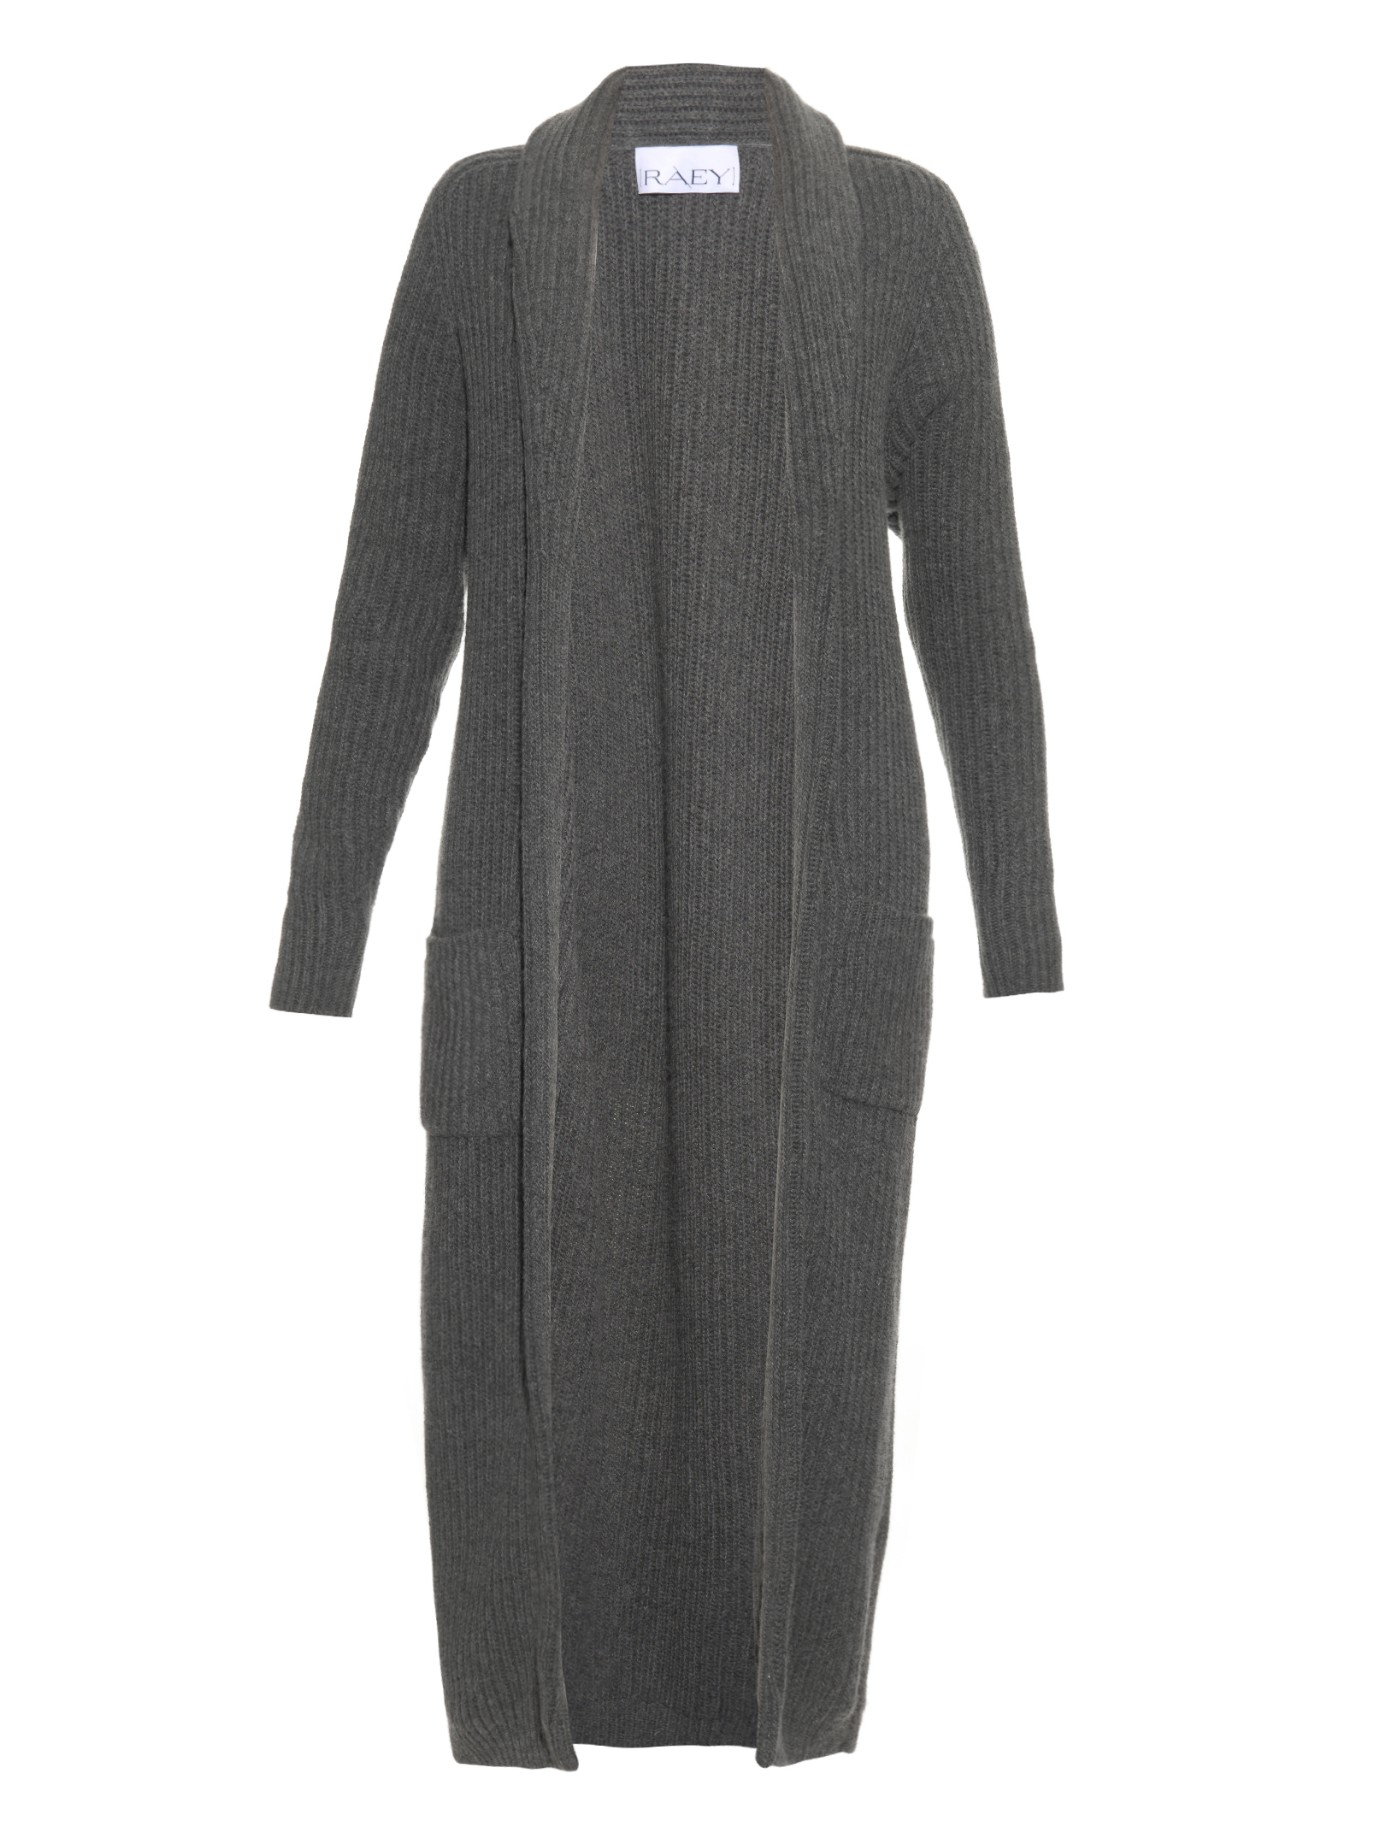 Raey Ribbed-knit Wool And Cashmere-blend Cardigan in Gray | Lyst